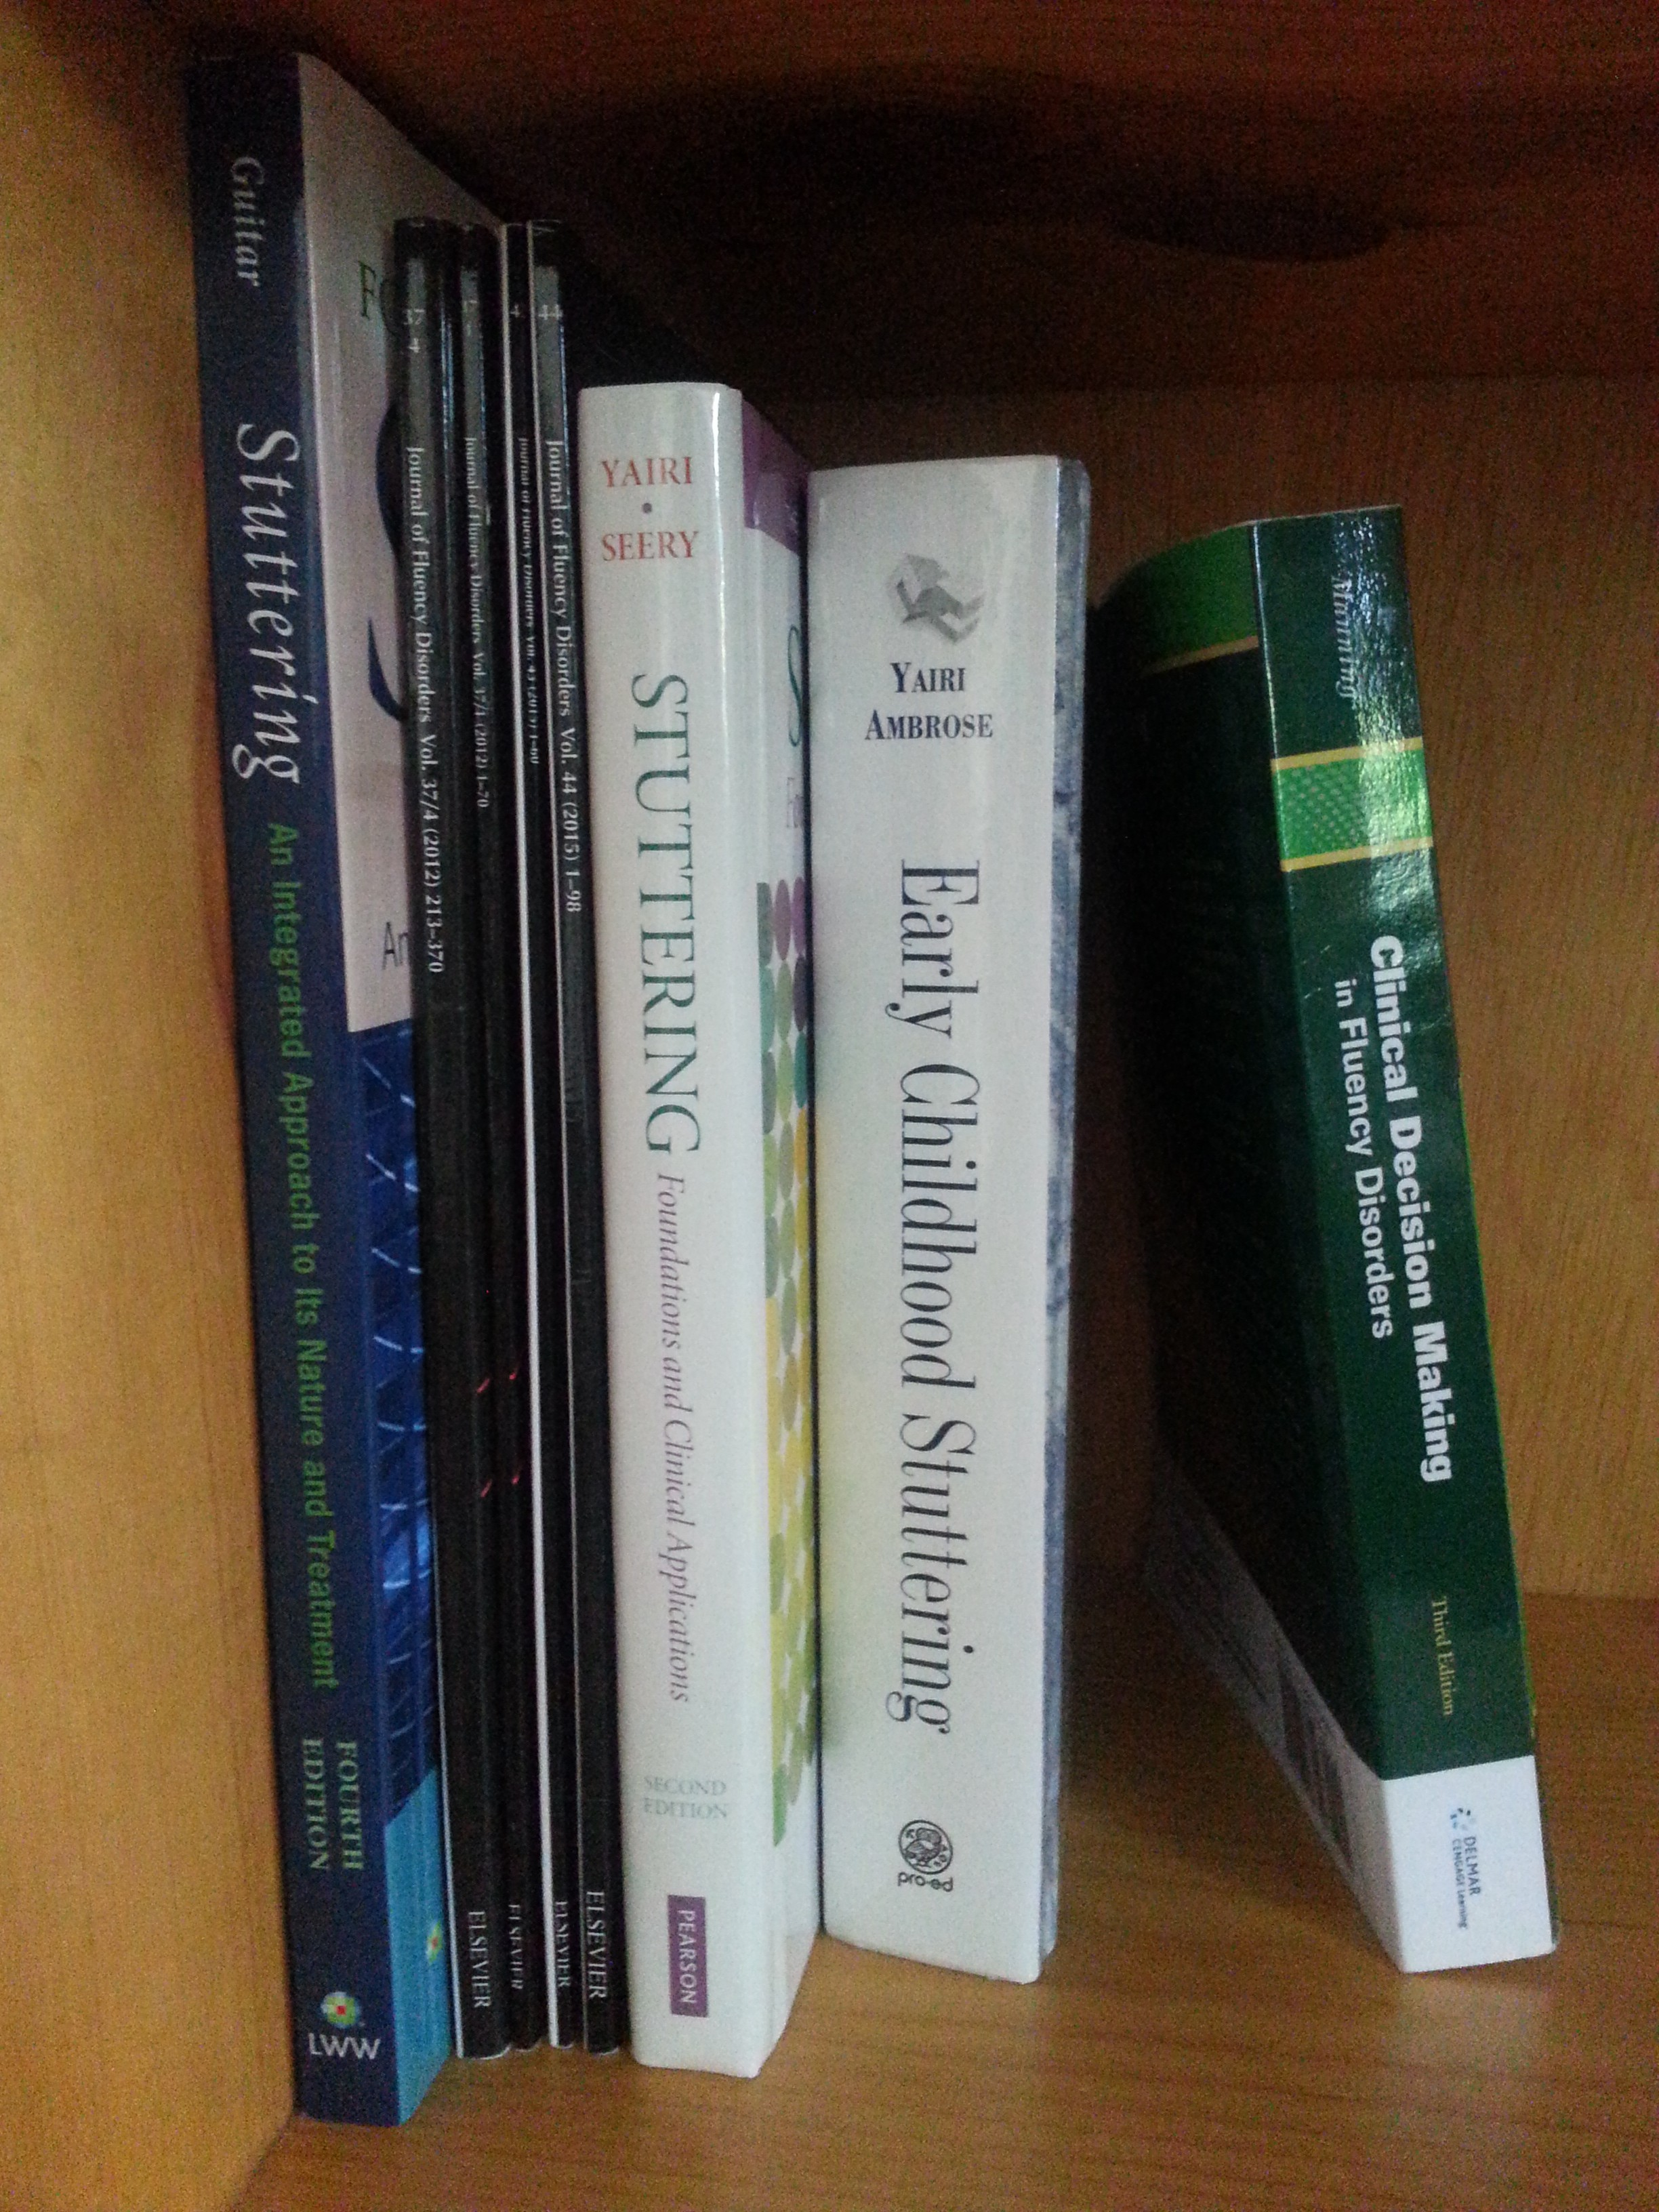 Stuttering textbooks and JFD